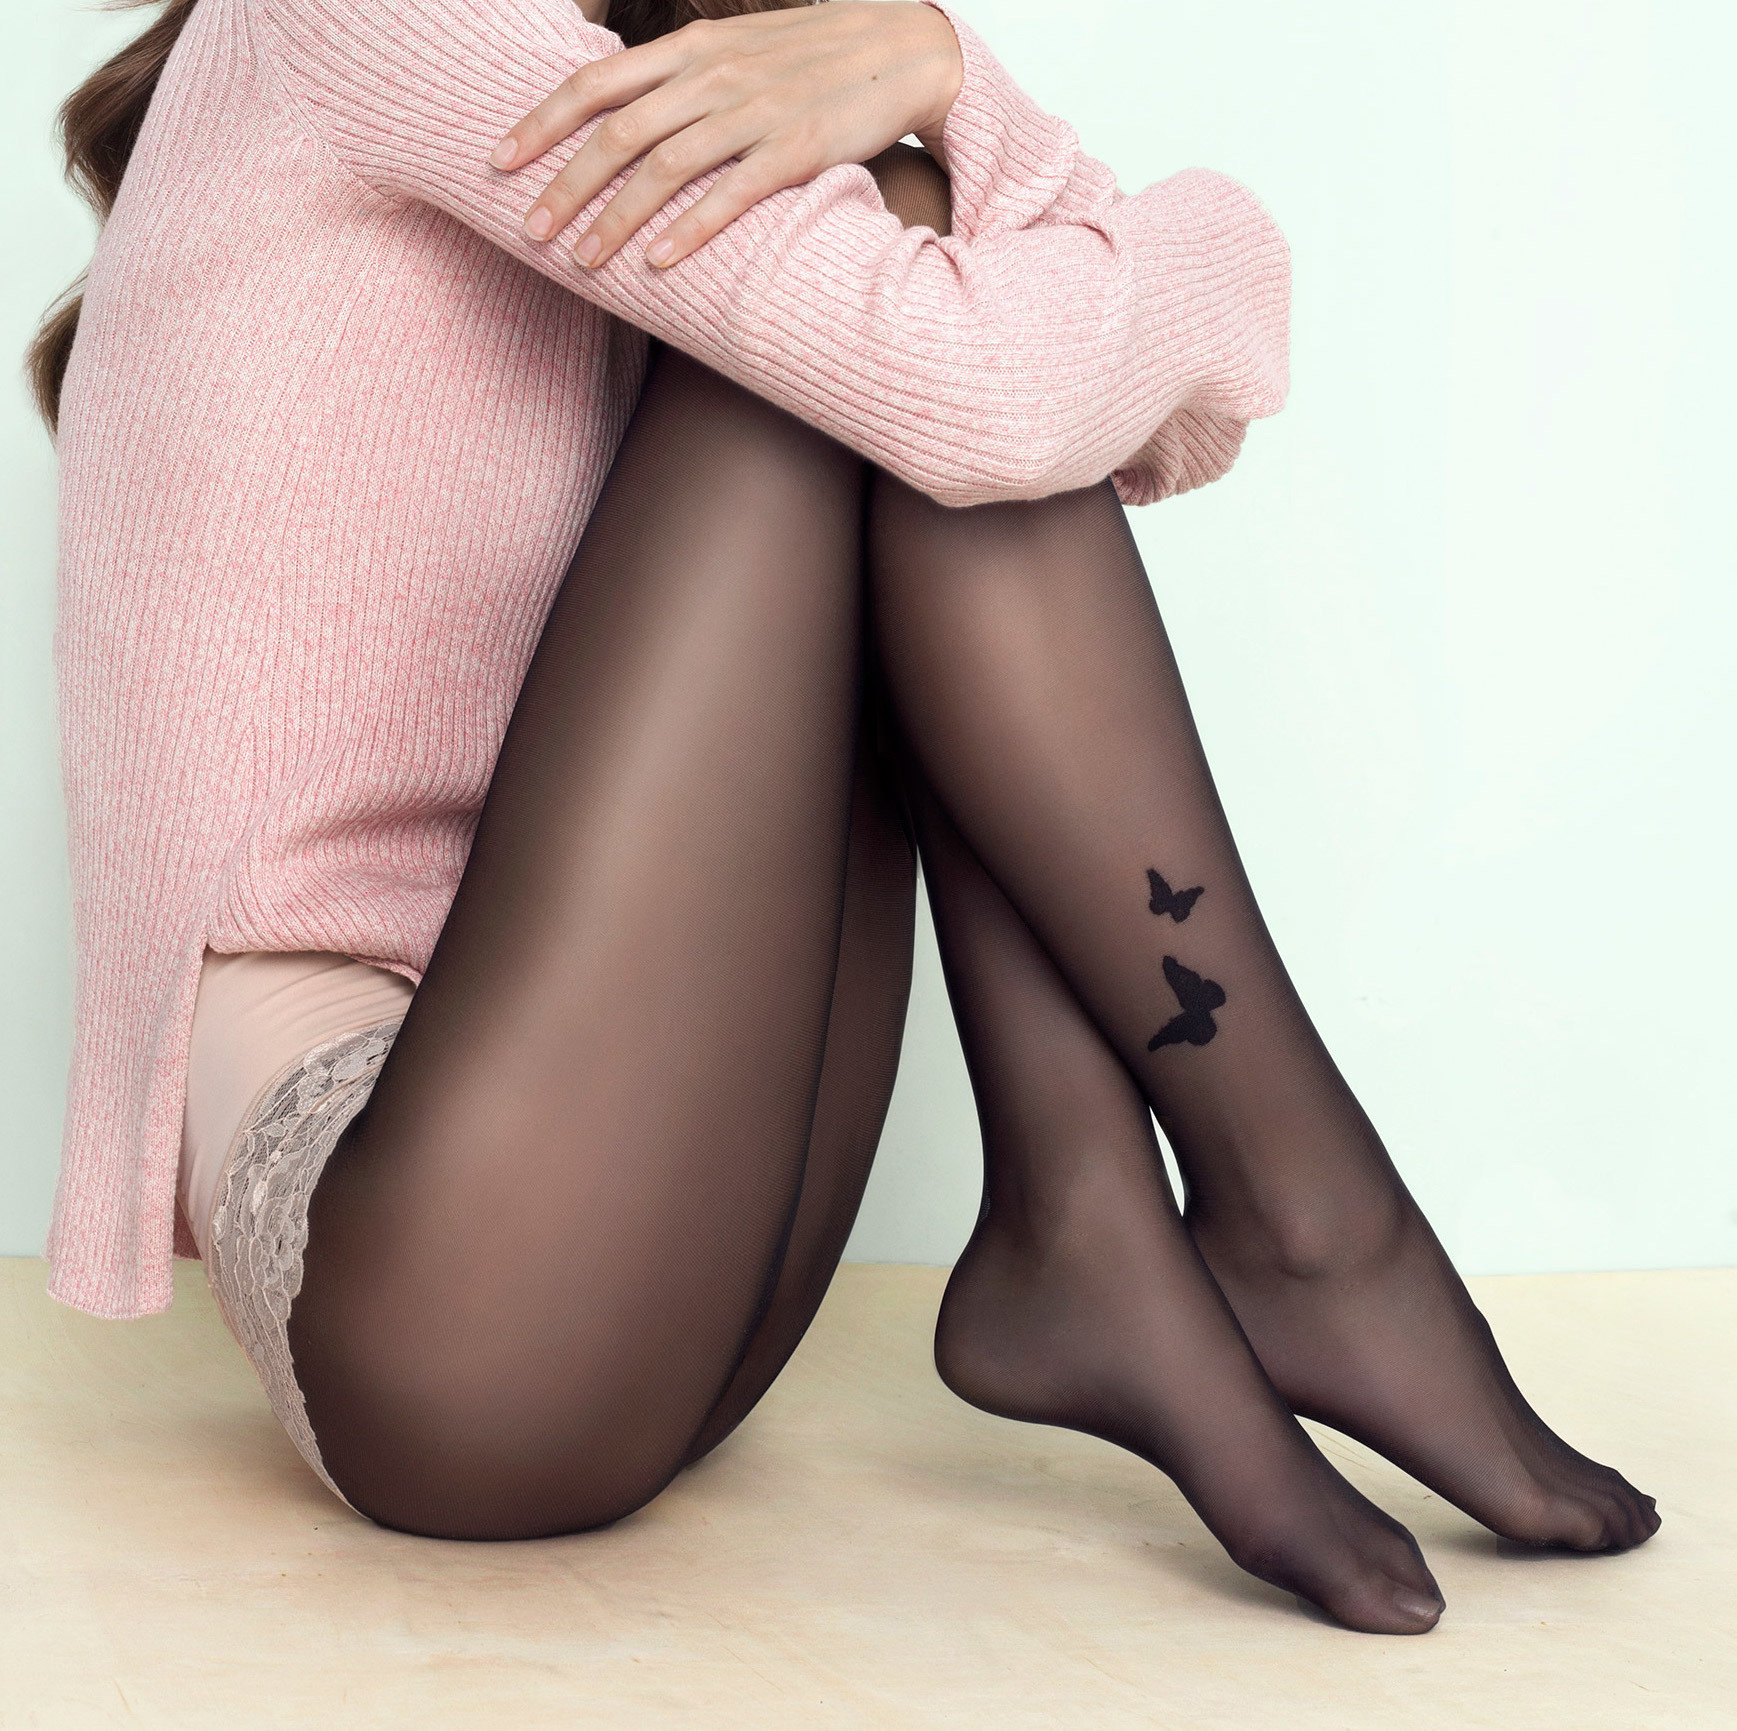 Fiore: Butterfly Ankle Tattoo Transparent Tights SOLD OUT FIO_BUTTERFLY